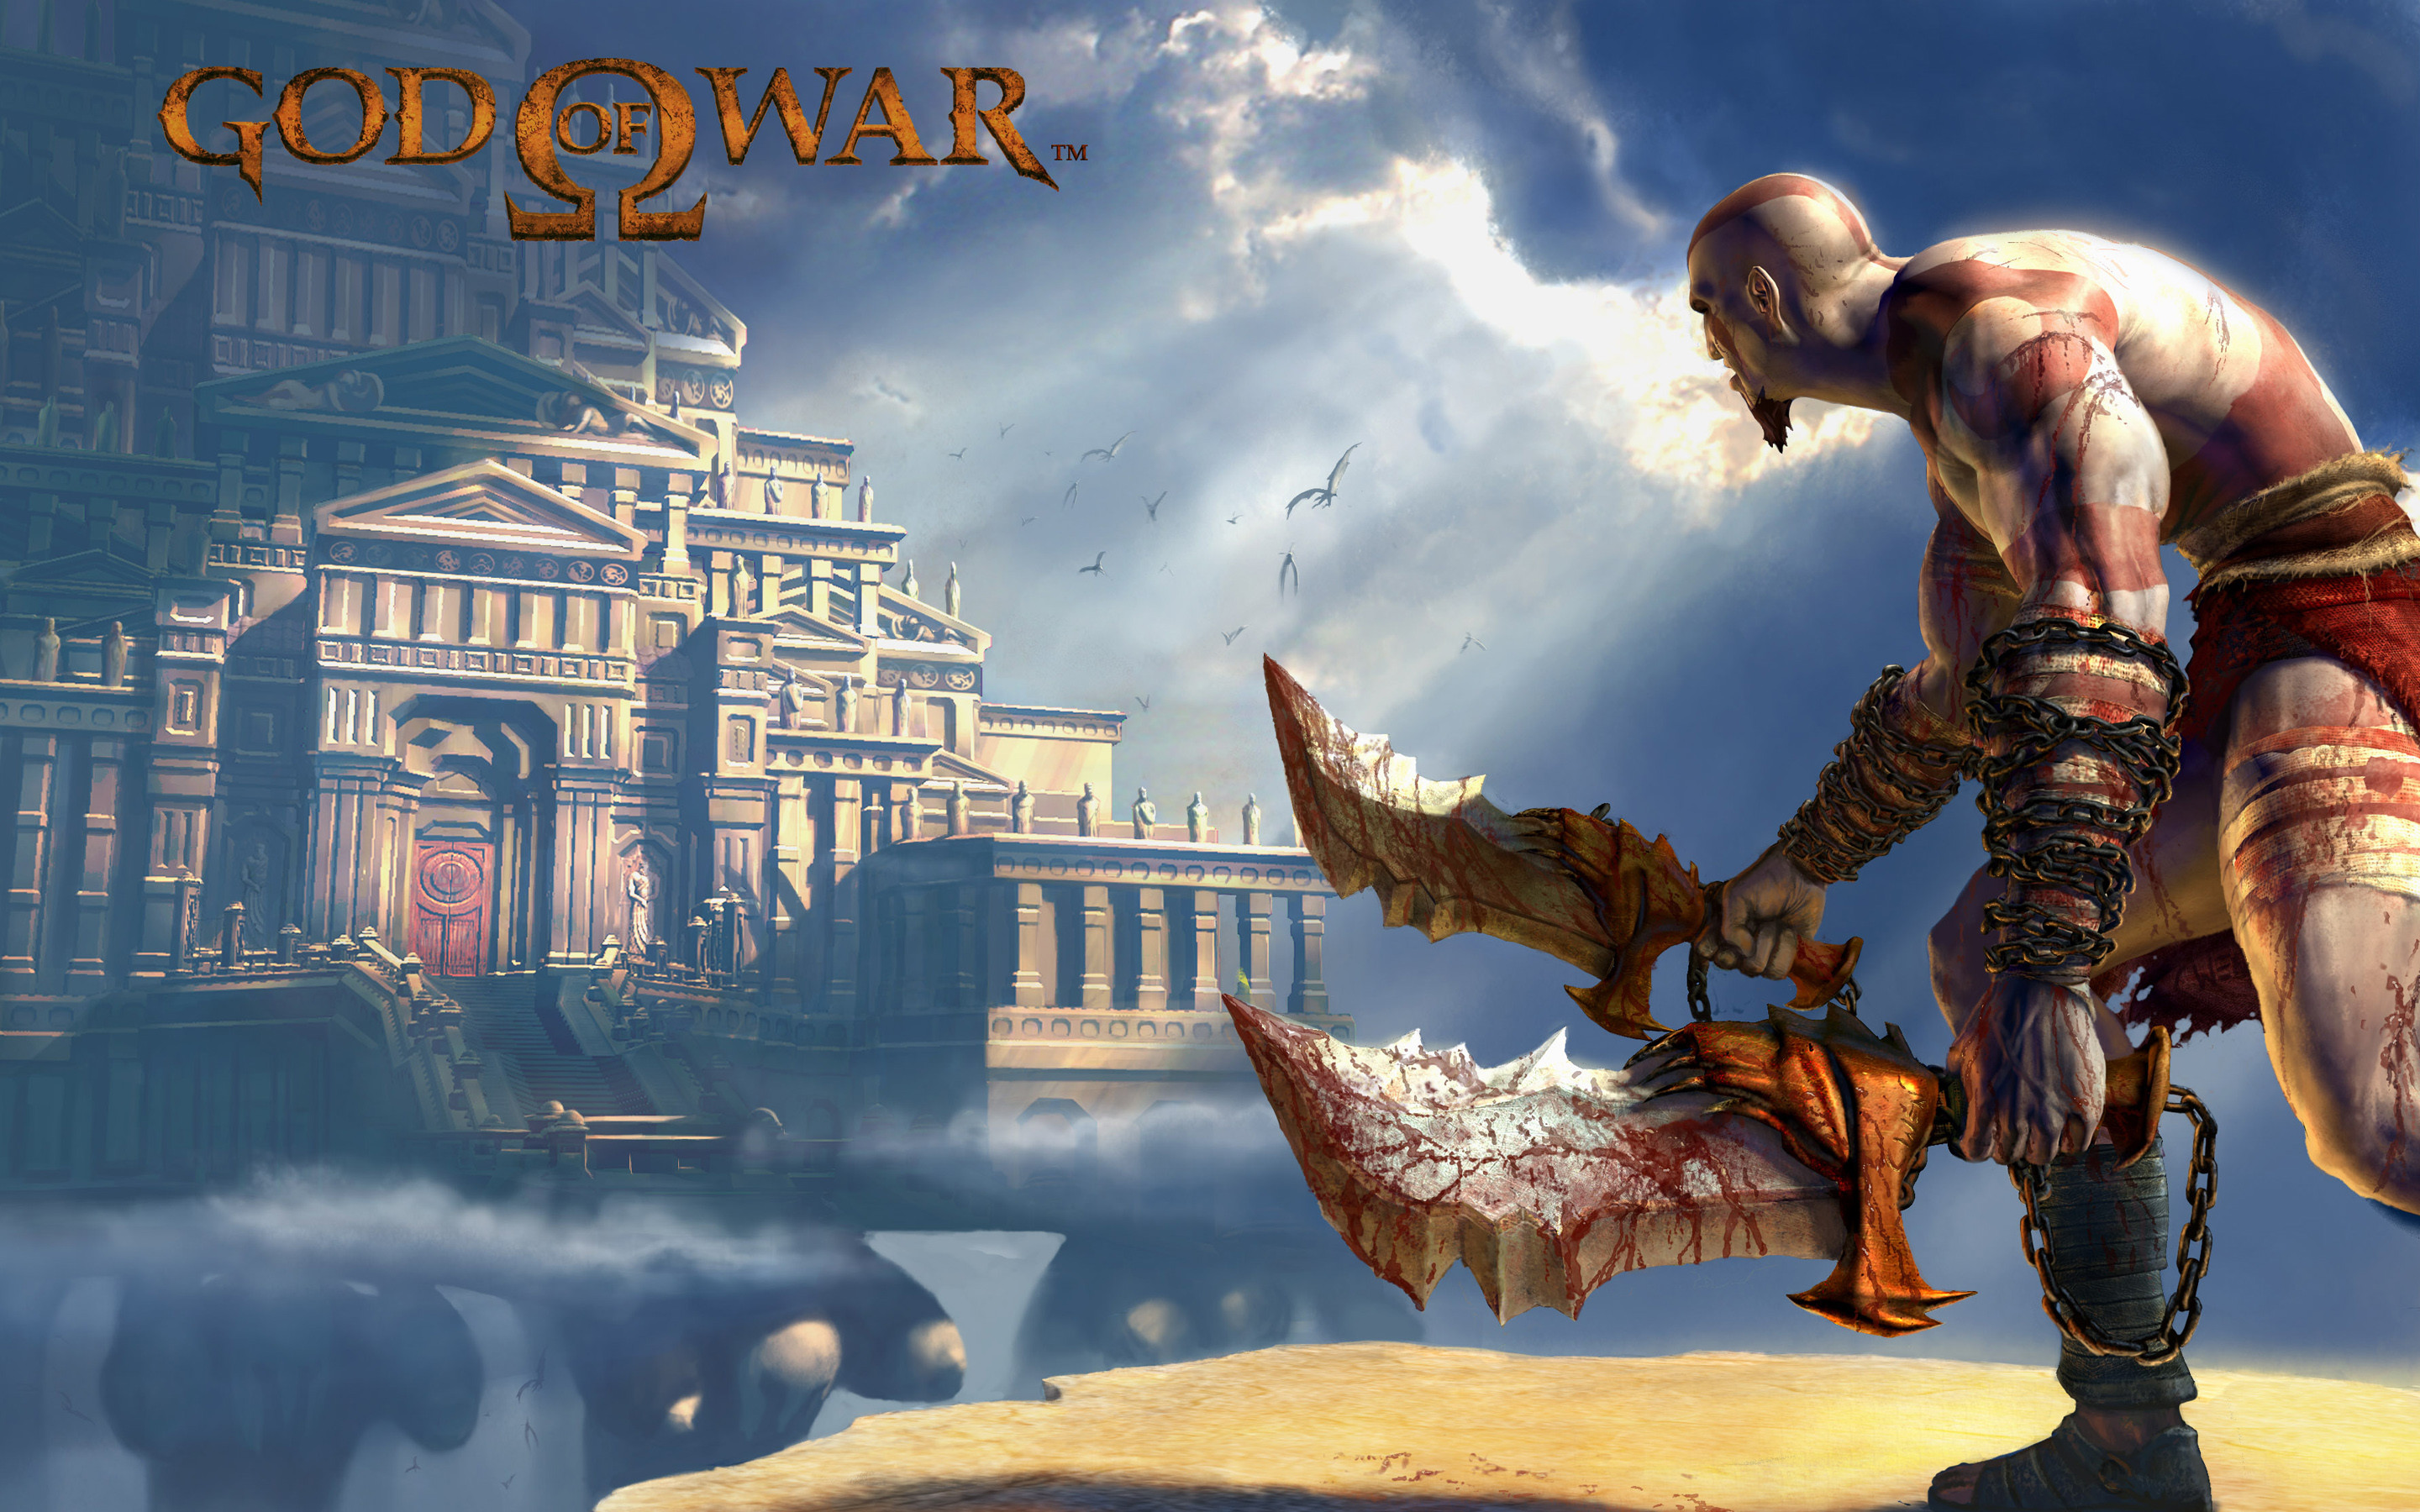 God of War 2 Game – This HD God of War 2 Game wallpaper is based